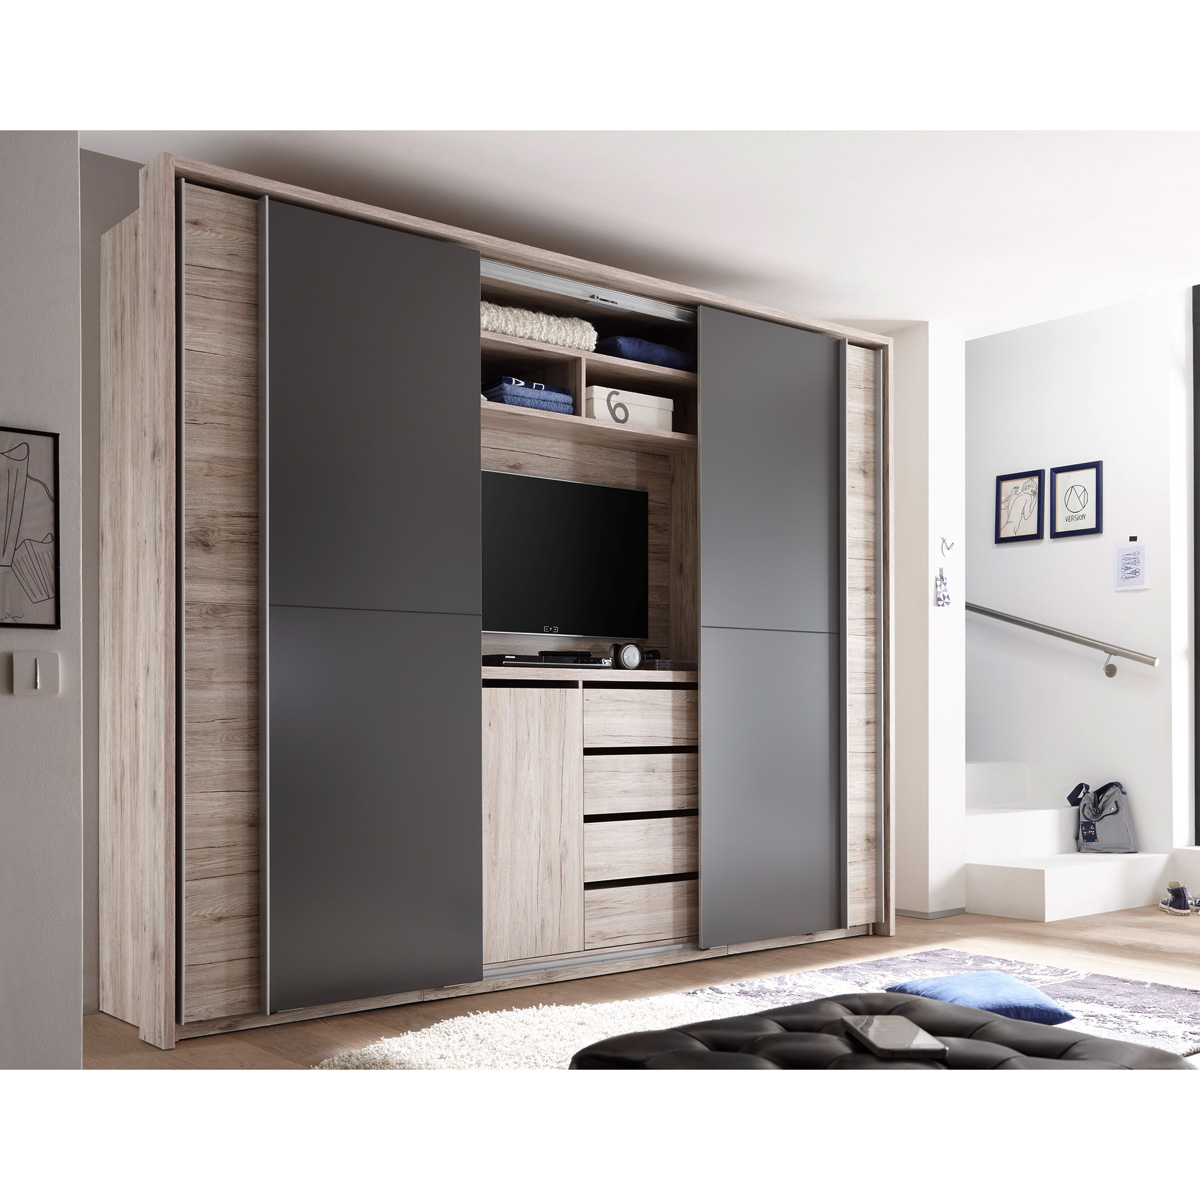 schwebet renschrank cinema schrank kleiderschrank in sandeiche lava mit tv fach ebay. Black Bedroom Furniture Sets. Home Design Ideas